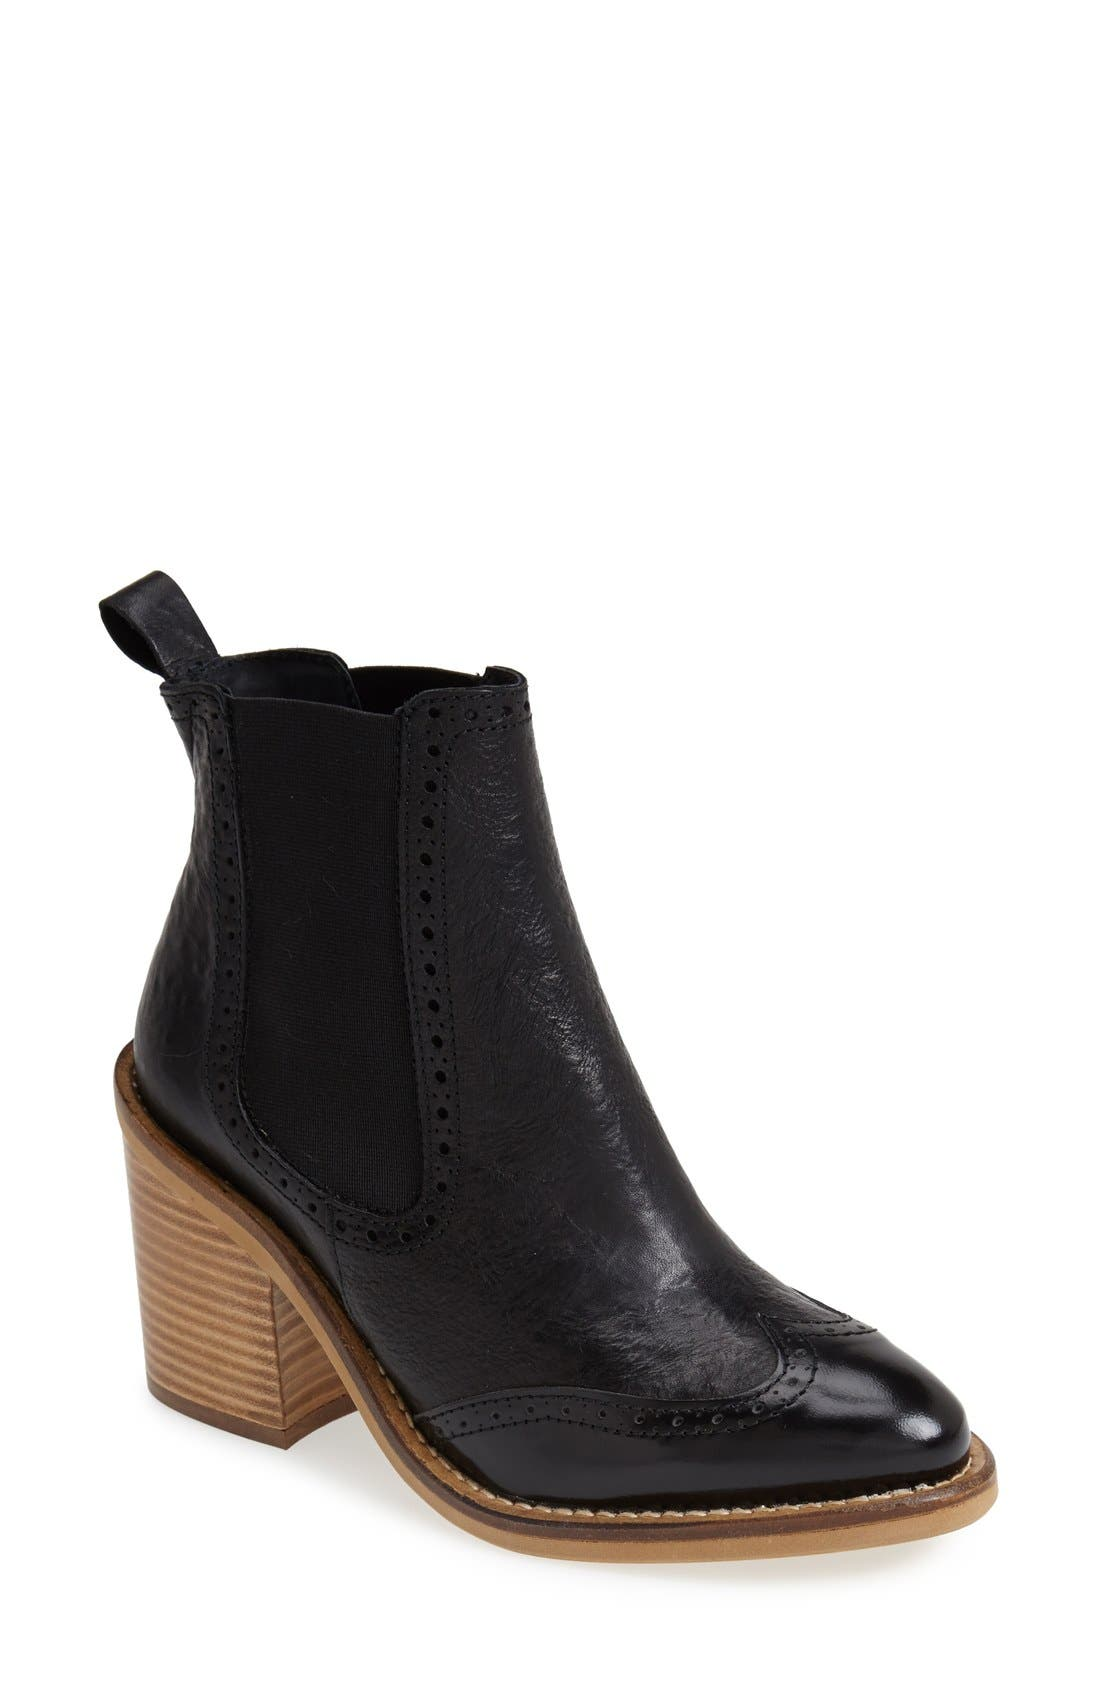 Main Image - Topshop 'Maine Brogue' Chelsea Ankle Bootie (Women)